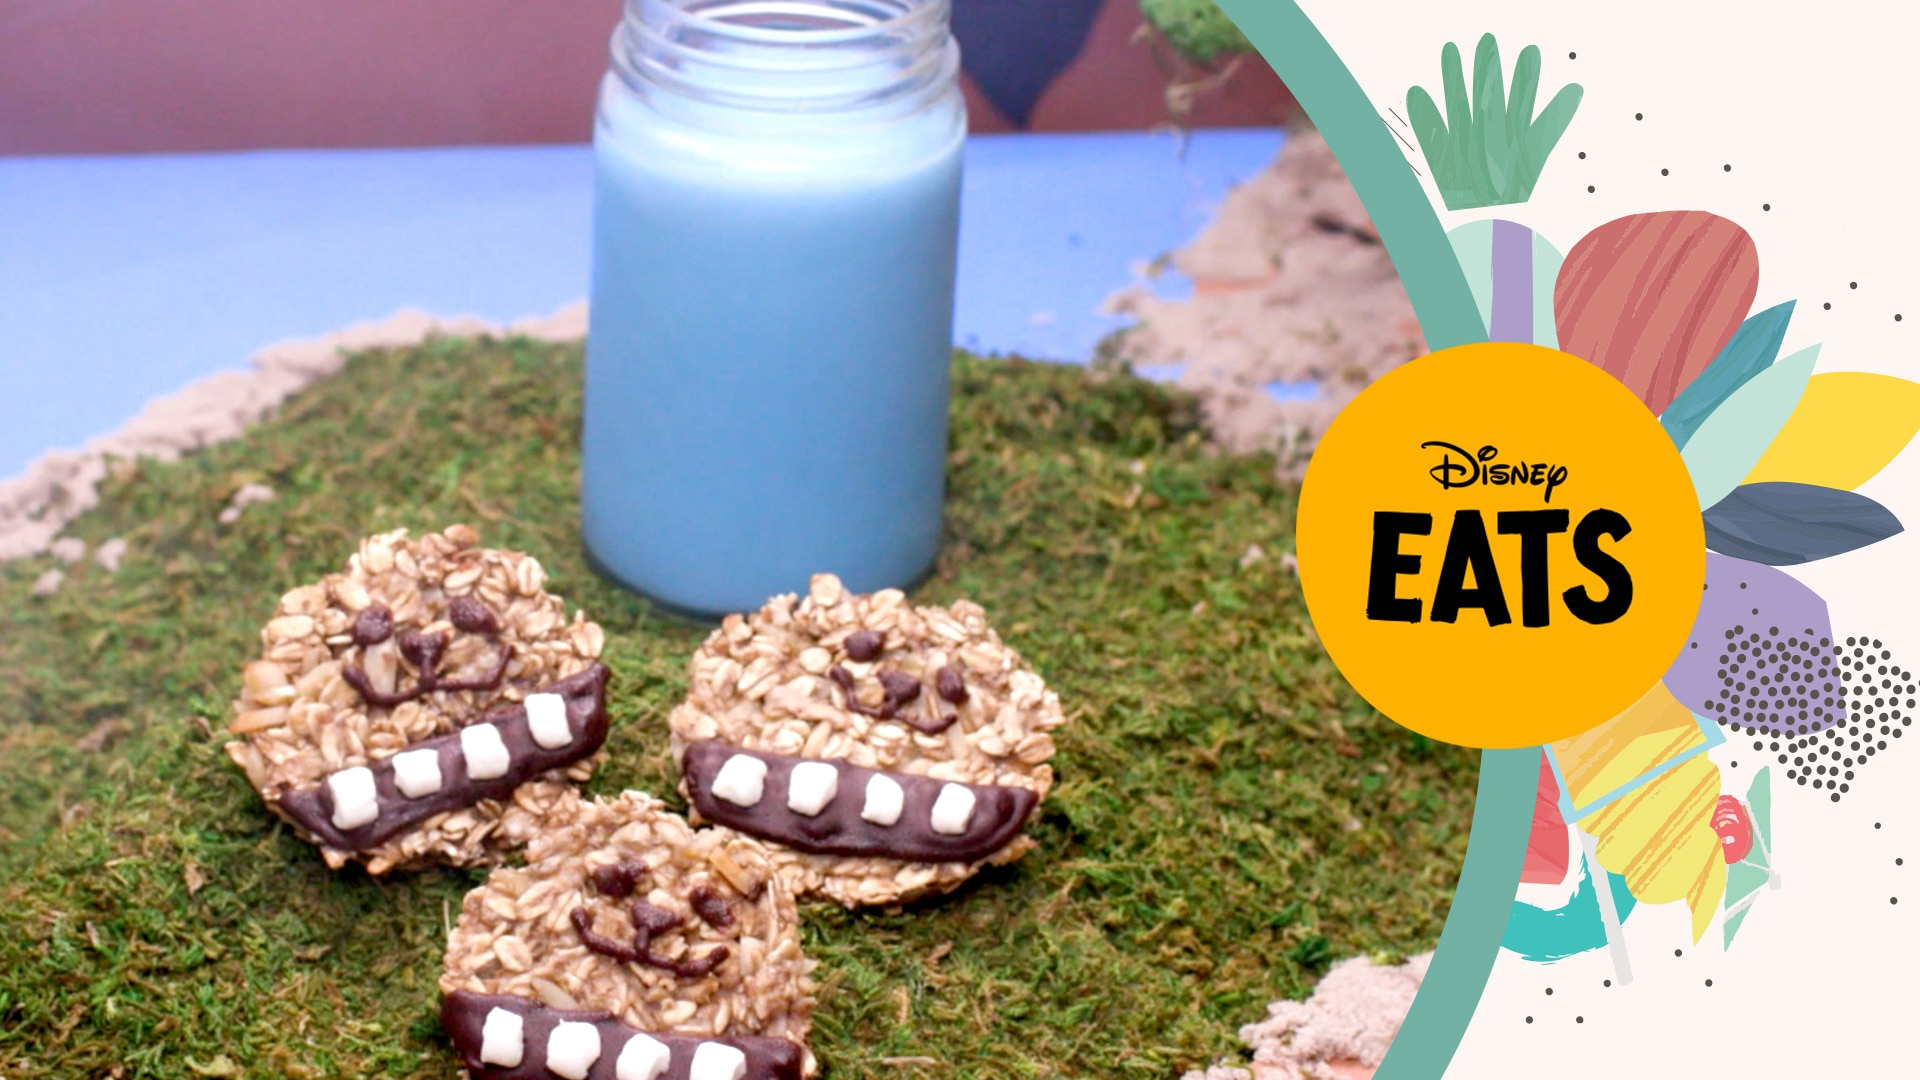 Star Wars, Chewie Chews & Blue Milk | Disney Eats